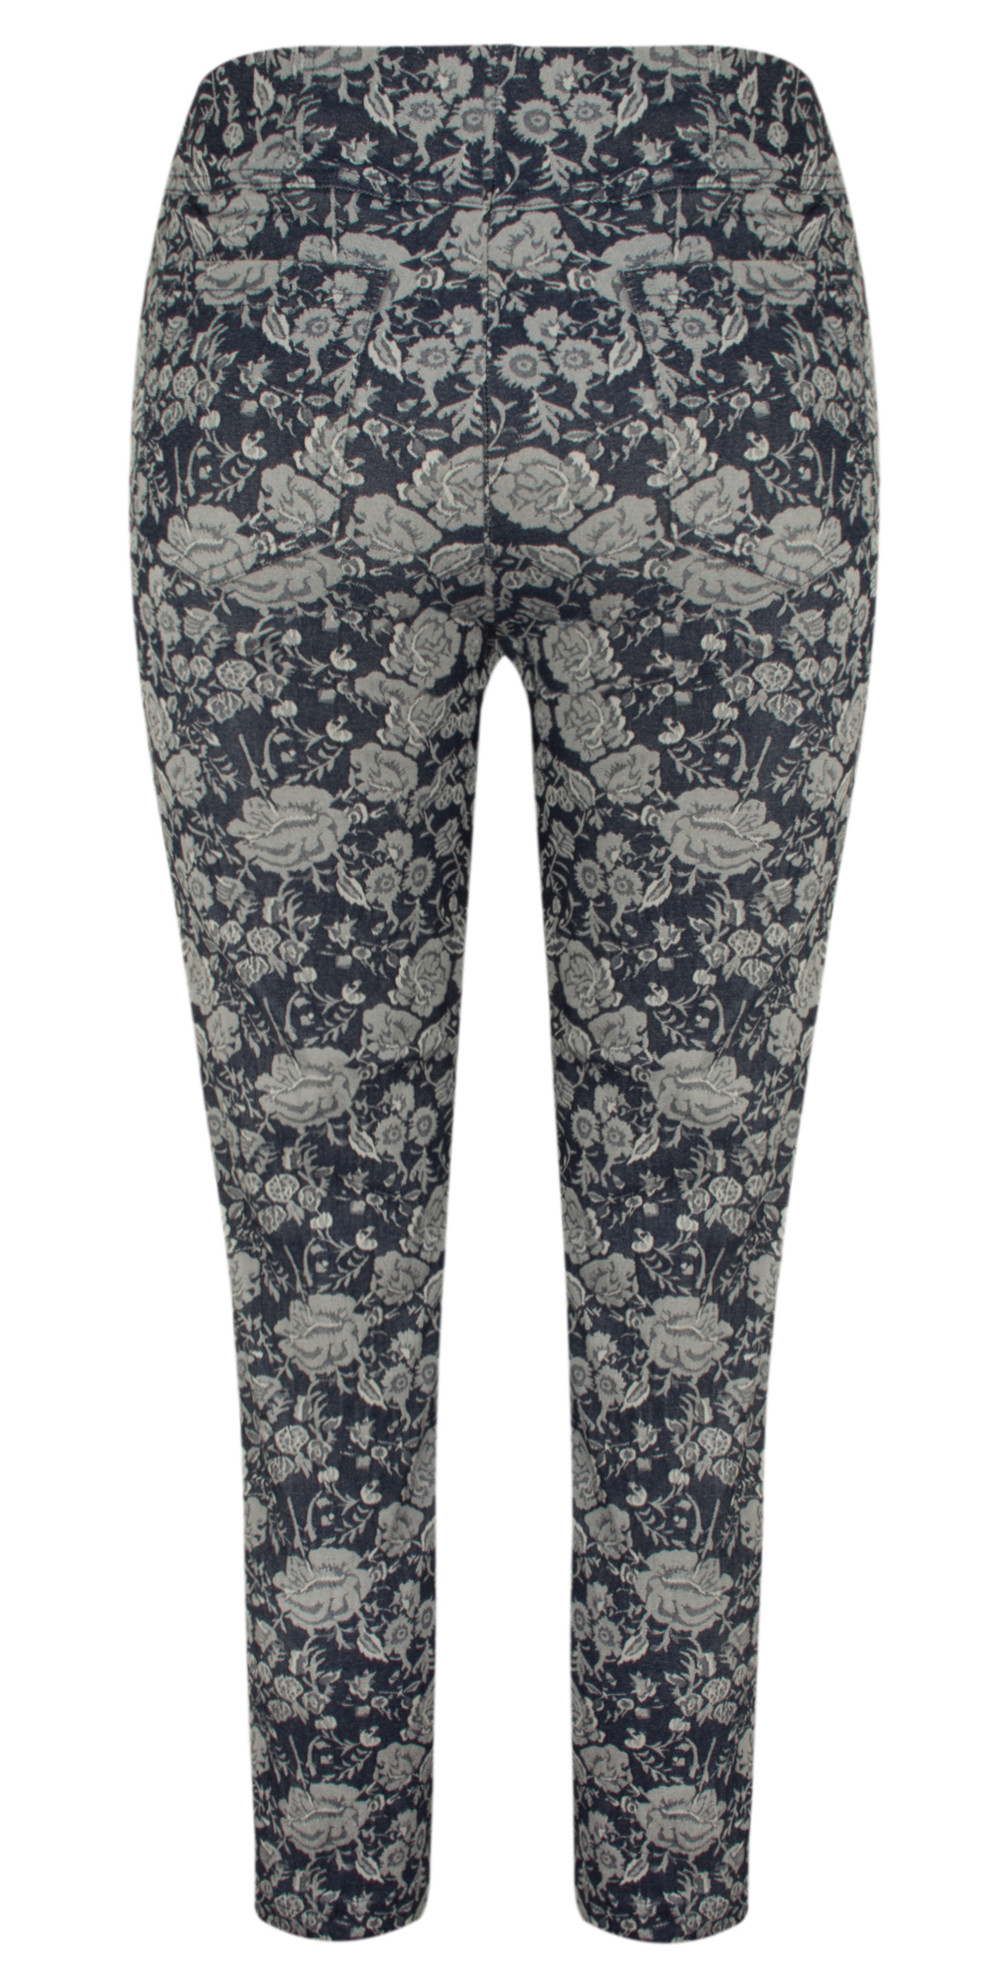 Bella 09 Rose Print 7/8 Cropped Trouser main image